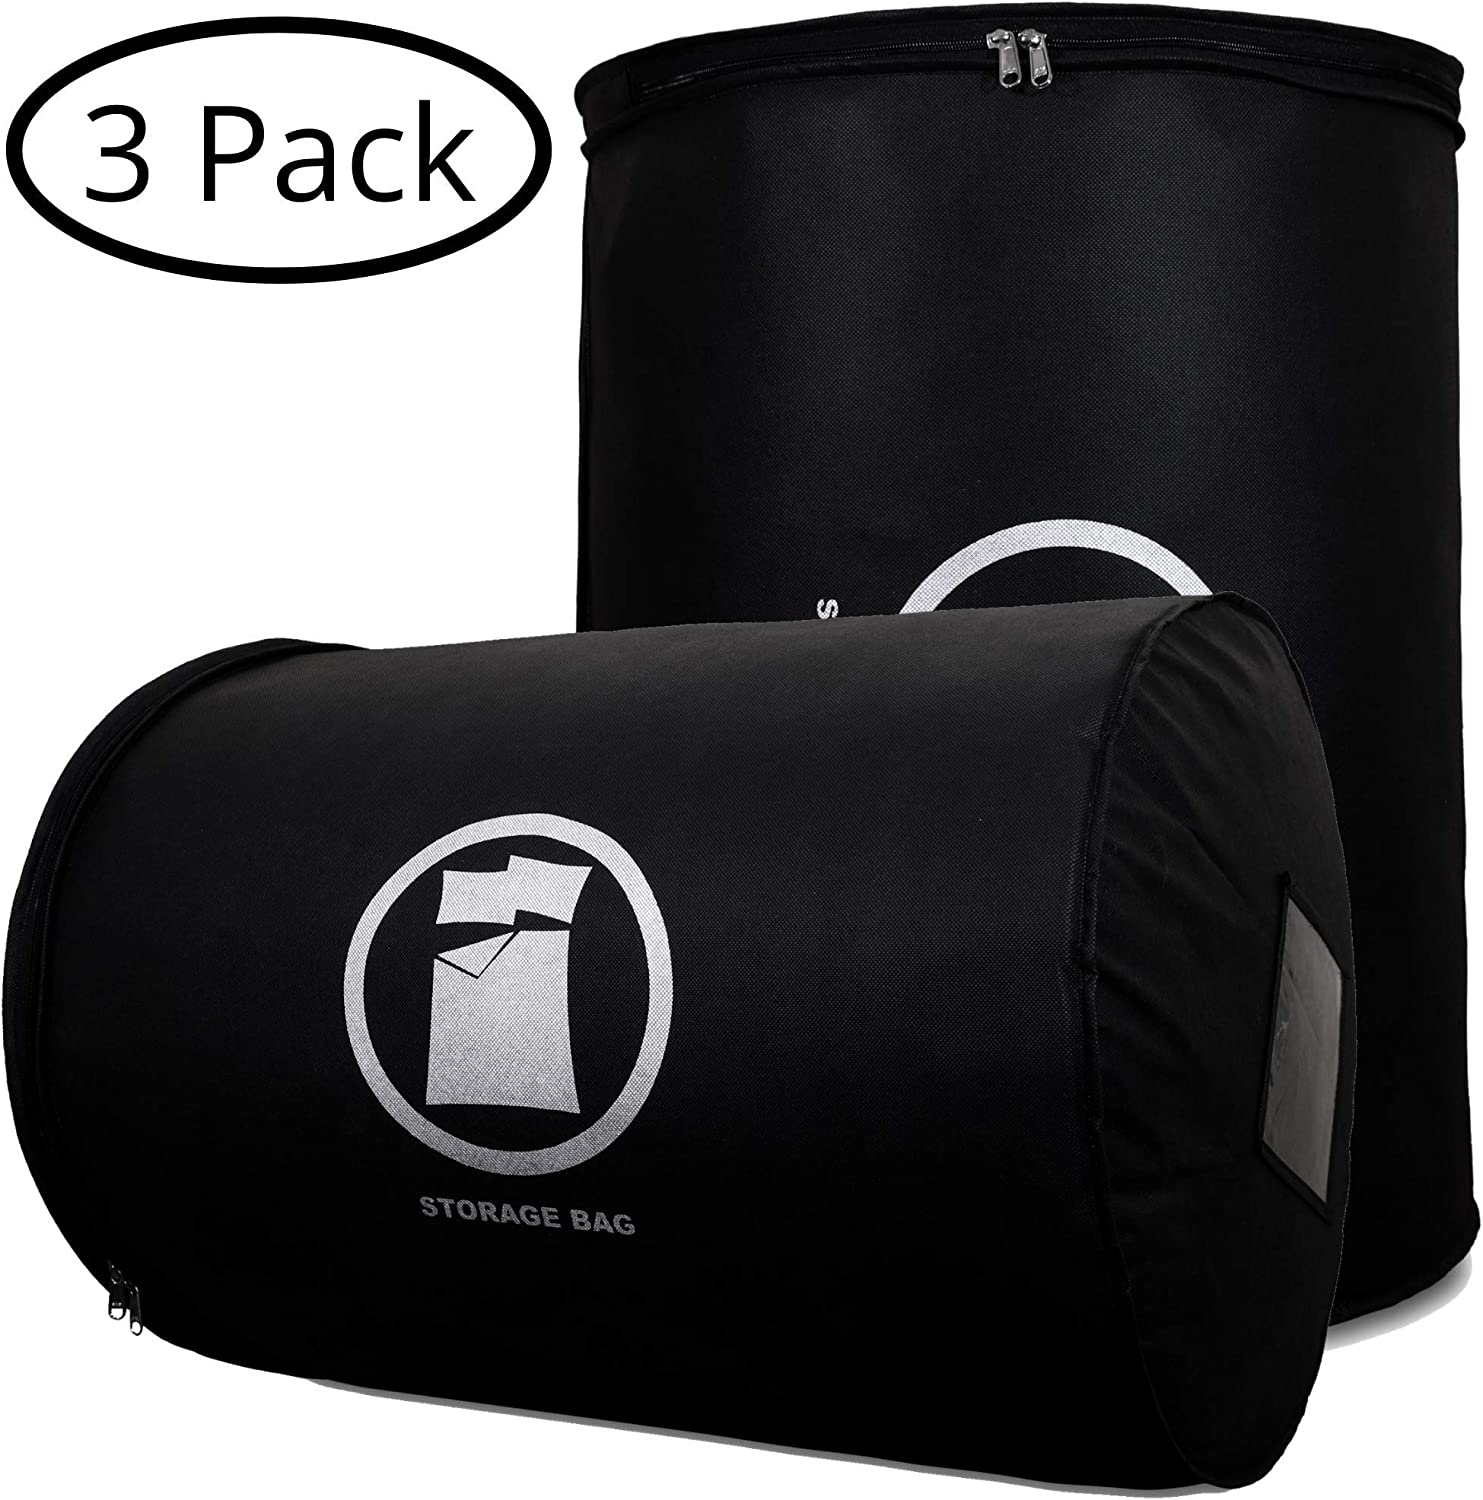 Goal Winners Breathable Duvet Bedding Storage Bag Bedding, Quilt & Clothing Storage Bags Fits Single, Double, Queen, King & Super King Size Duvet Storage Bags - 3 Pack (Black, King/Super King)